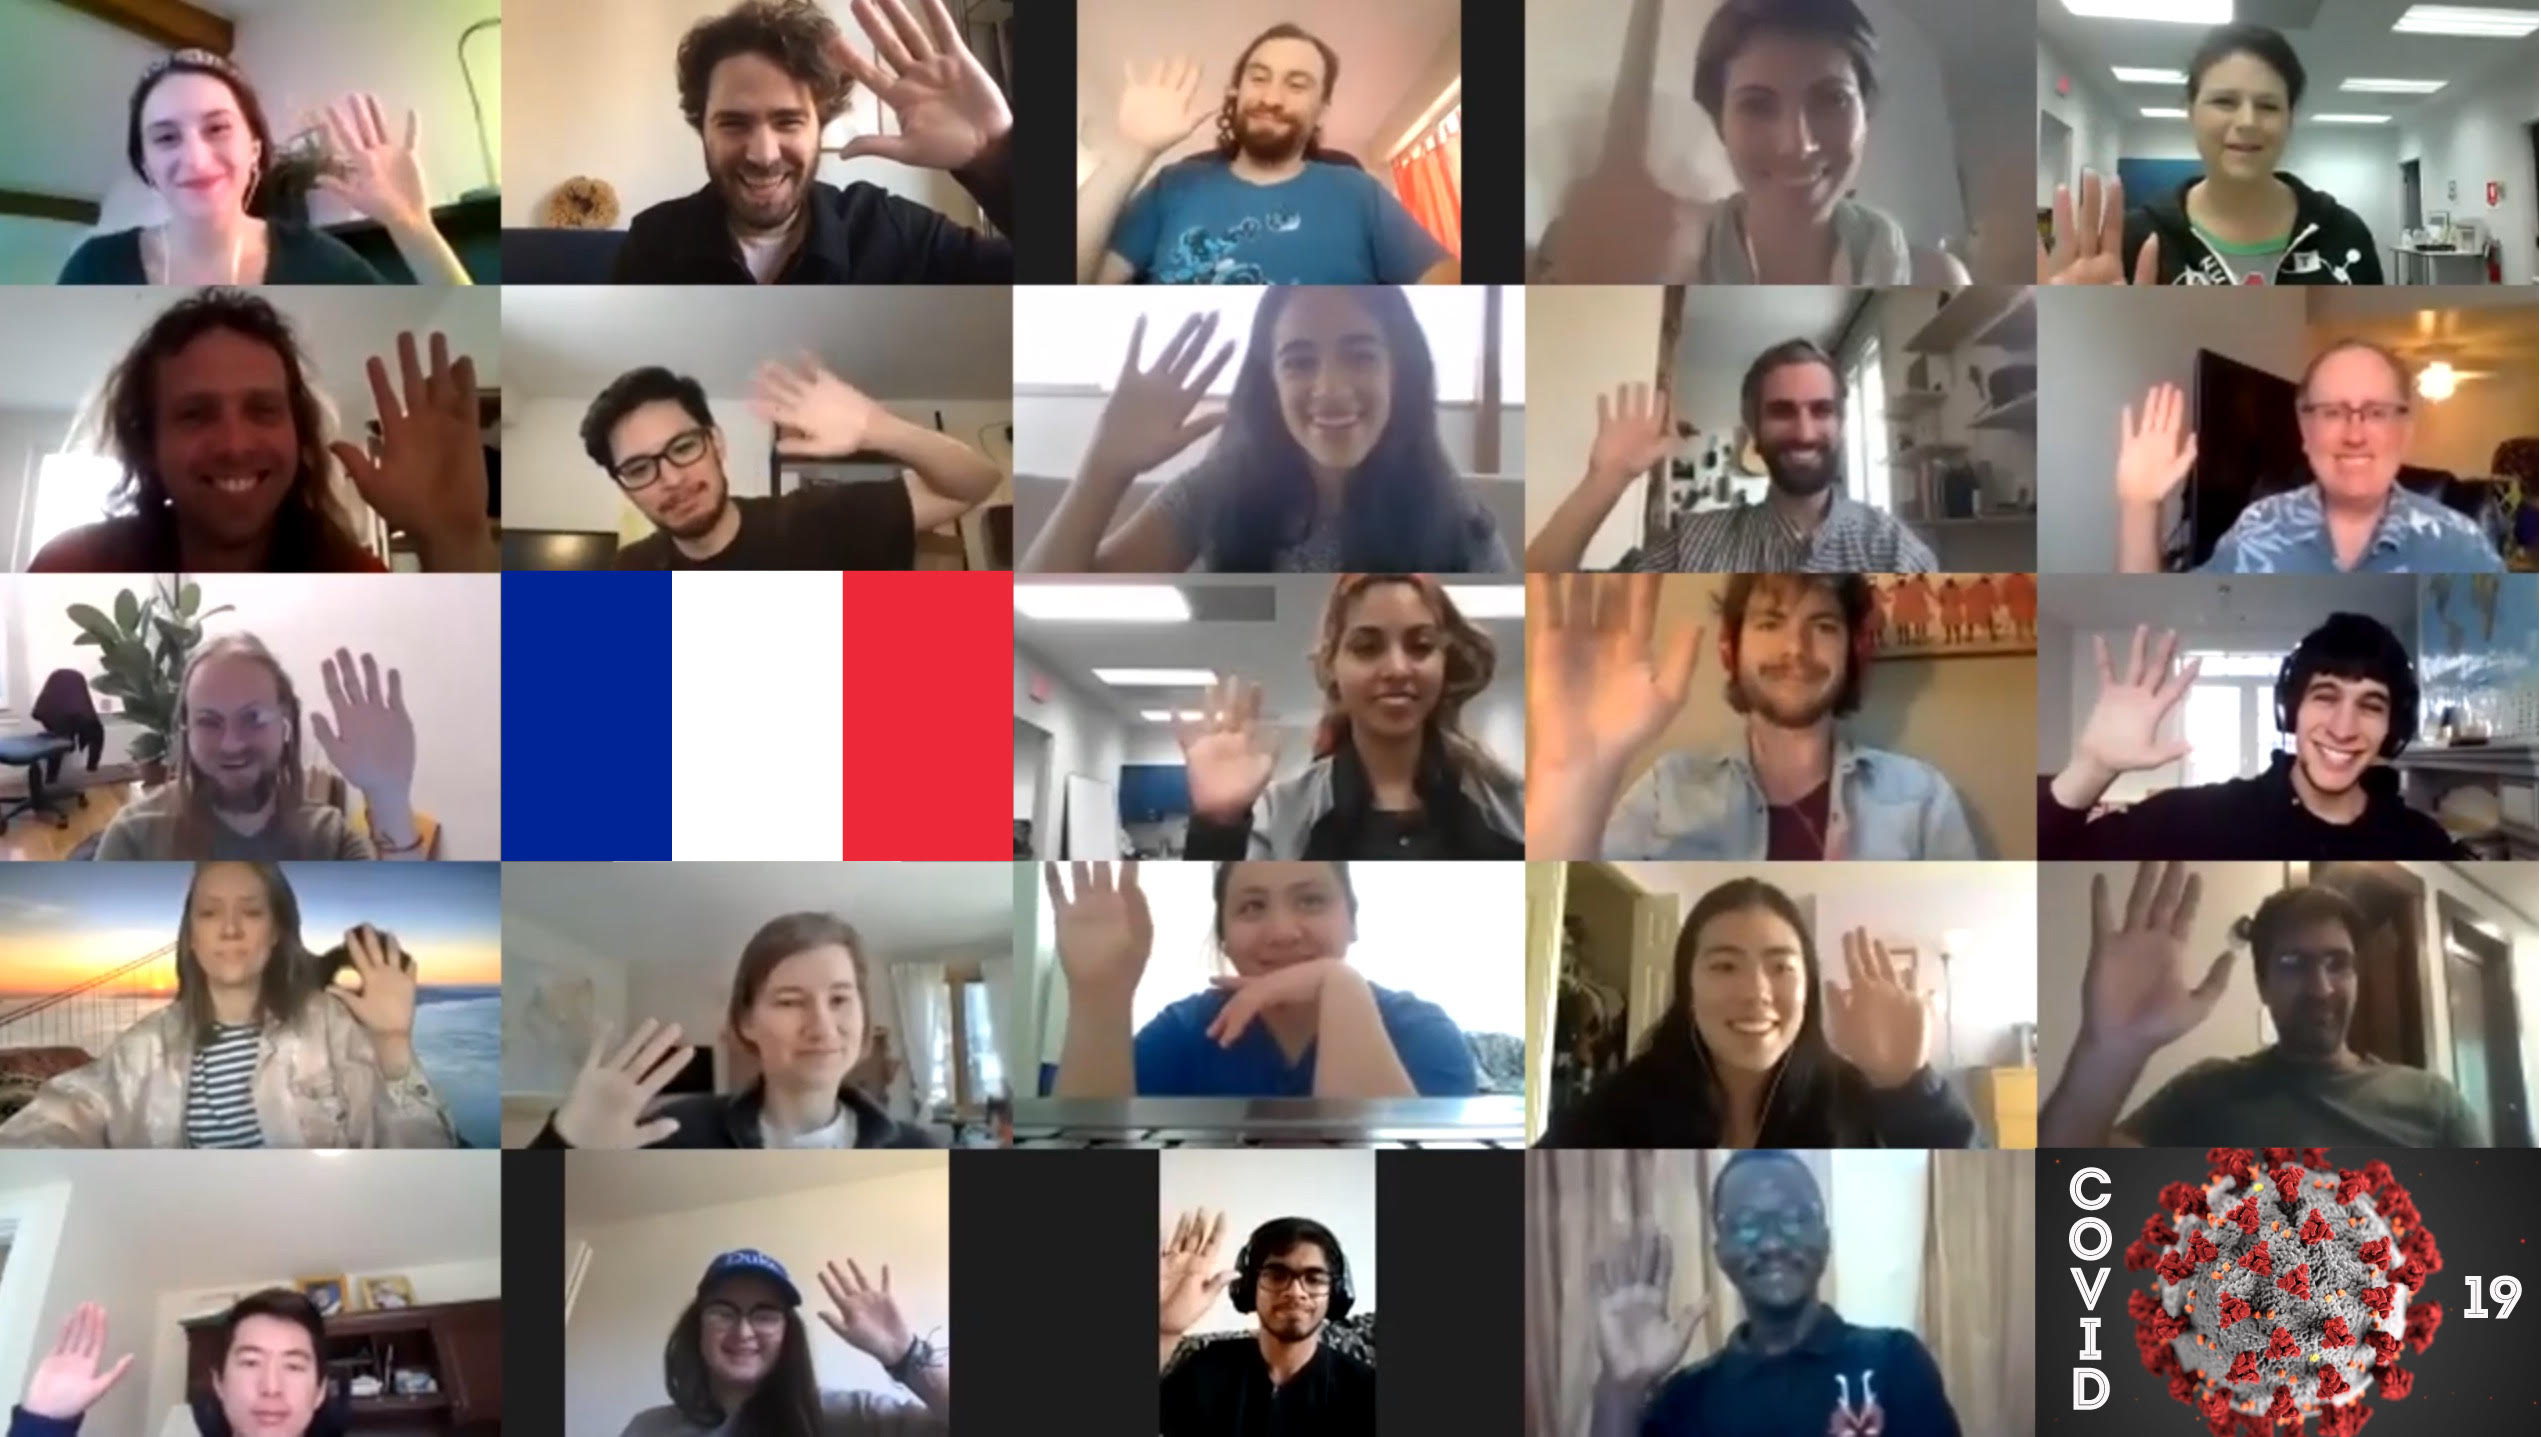 Plan C Live: Maker Response to Covid-19 in France